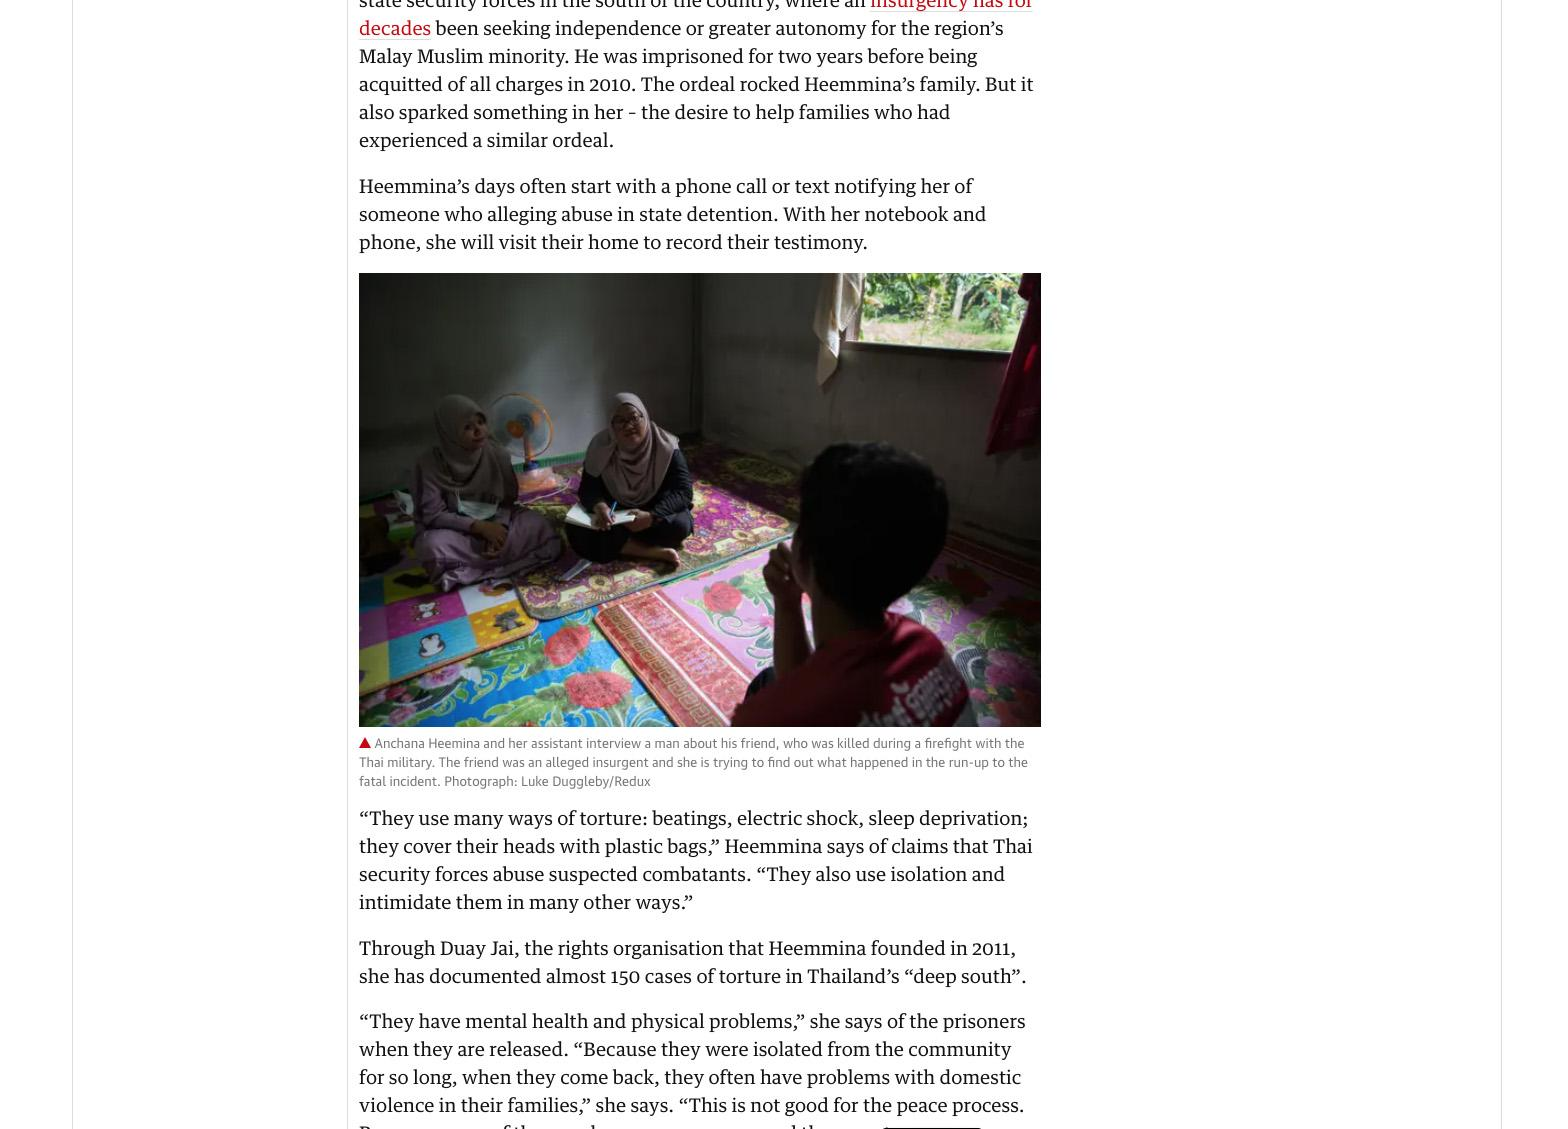 Art and Documentary Photography - Loading https-__www.theguardian.com_global-development_2021_aug_17_the-woman-on-a-mission-to-expose-torture-in-thailands-troubled-south_2.jpg